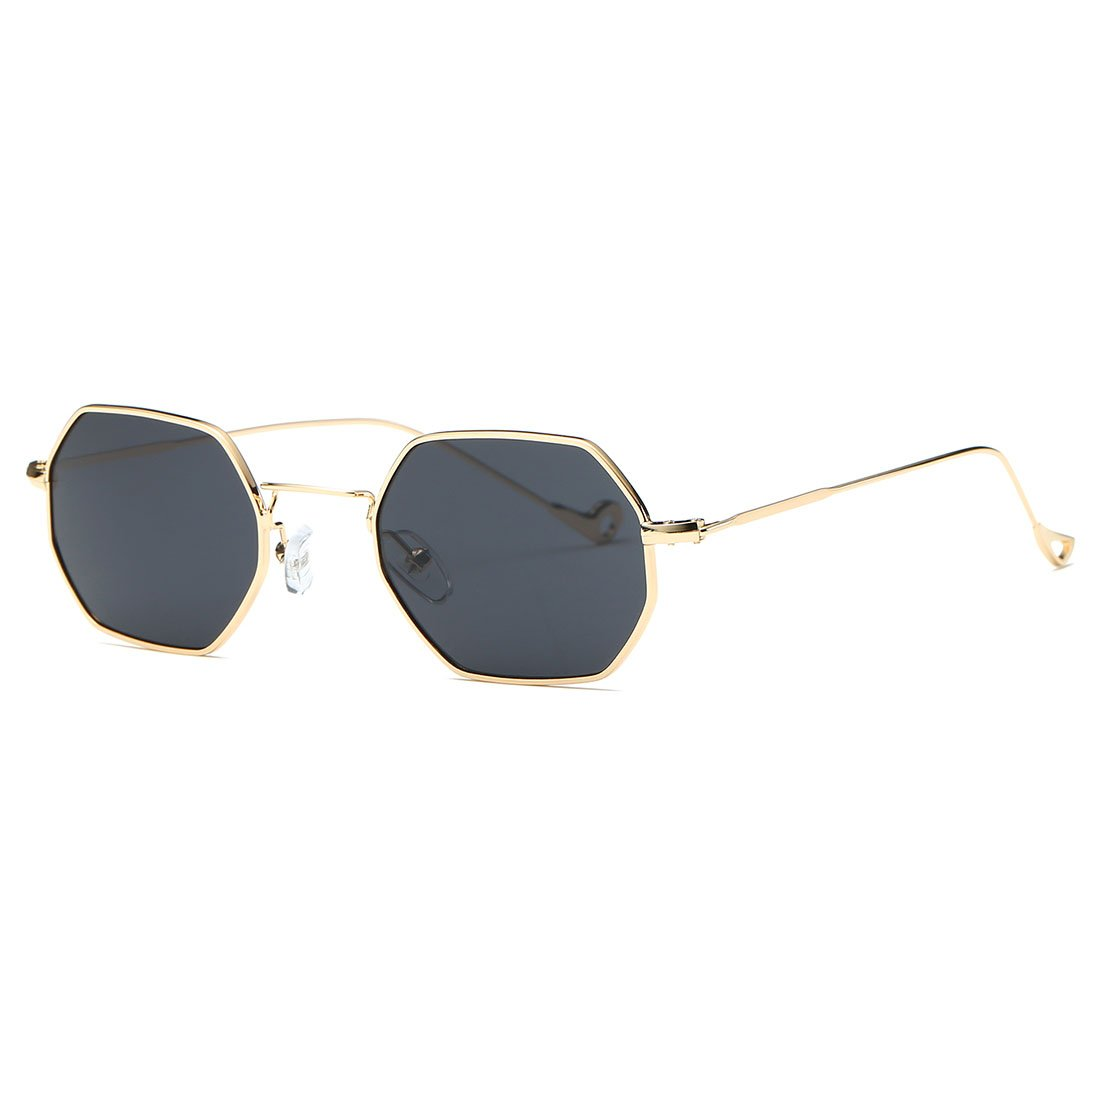 AEVOGUE Unisex Sunglasses Small Metal Frame Asymmetry Temple AE0520 (Gold&Black, 56)